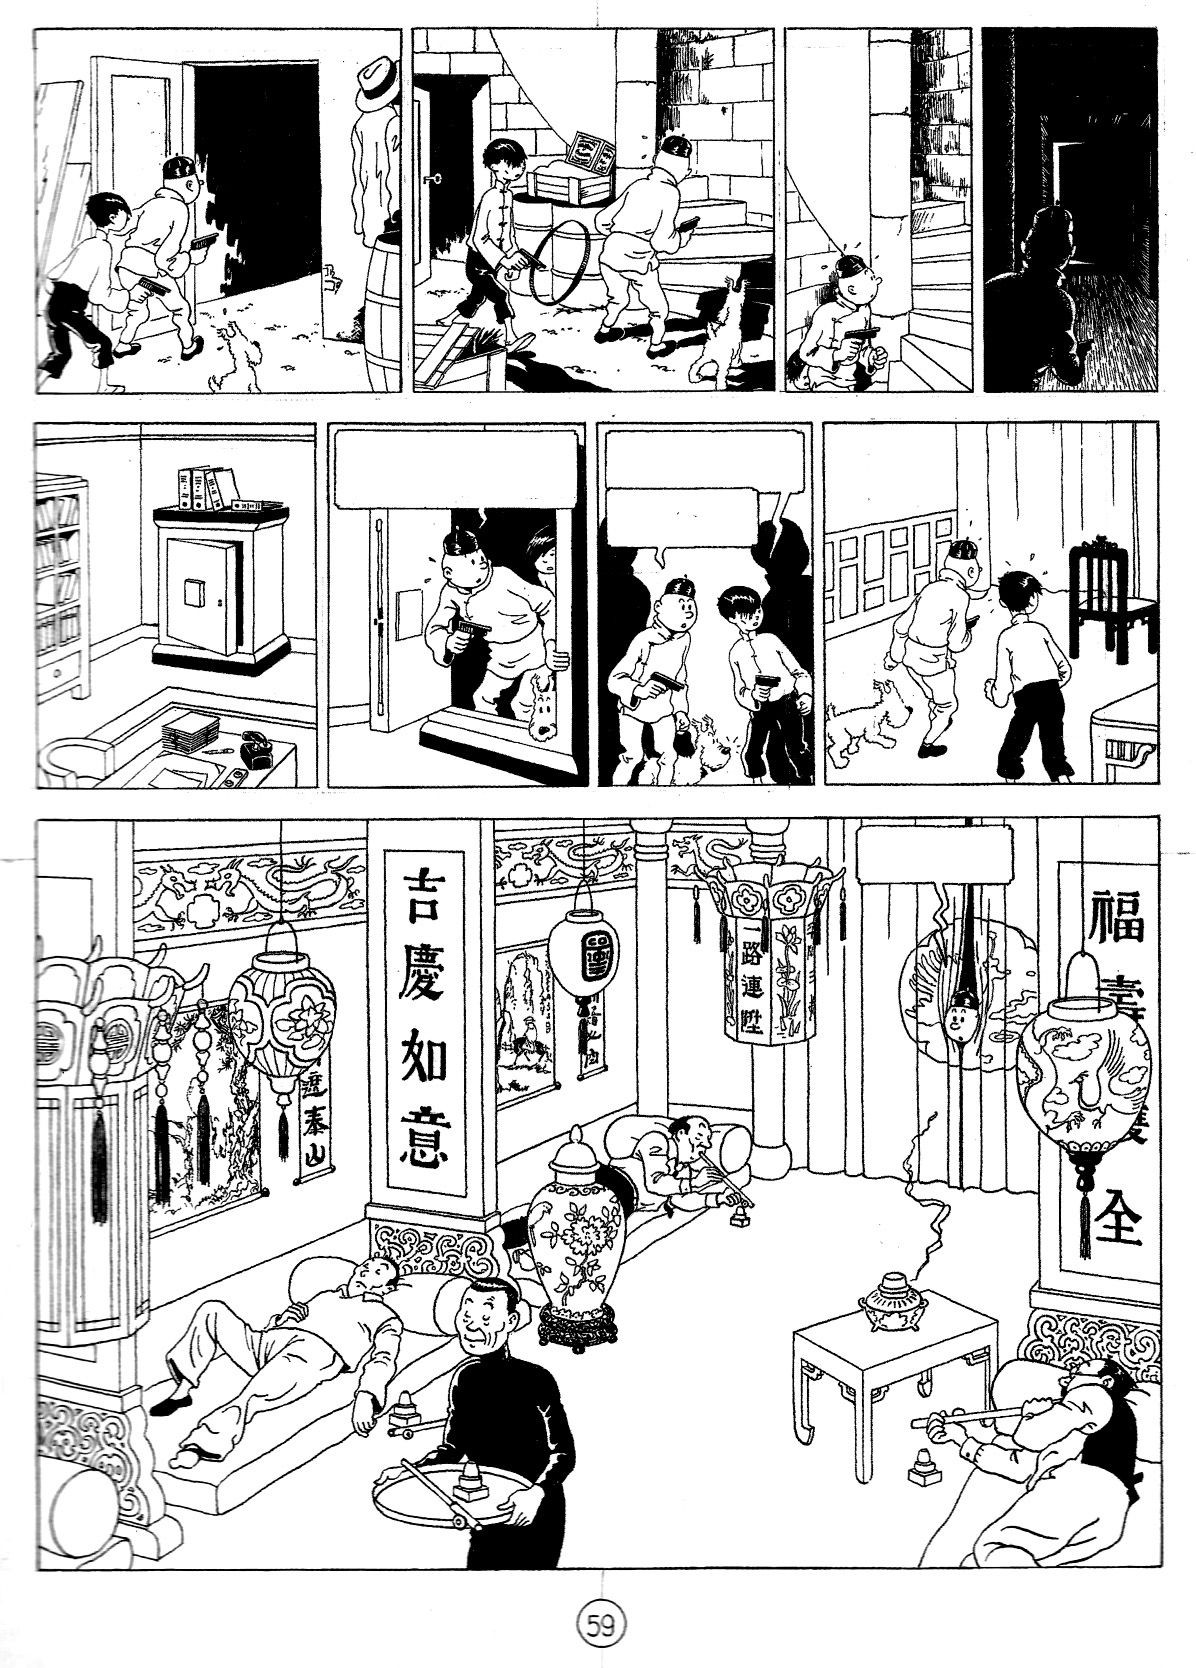 Tintin is running with his dog Snowy coloring page | Free ... | 1668x1196